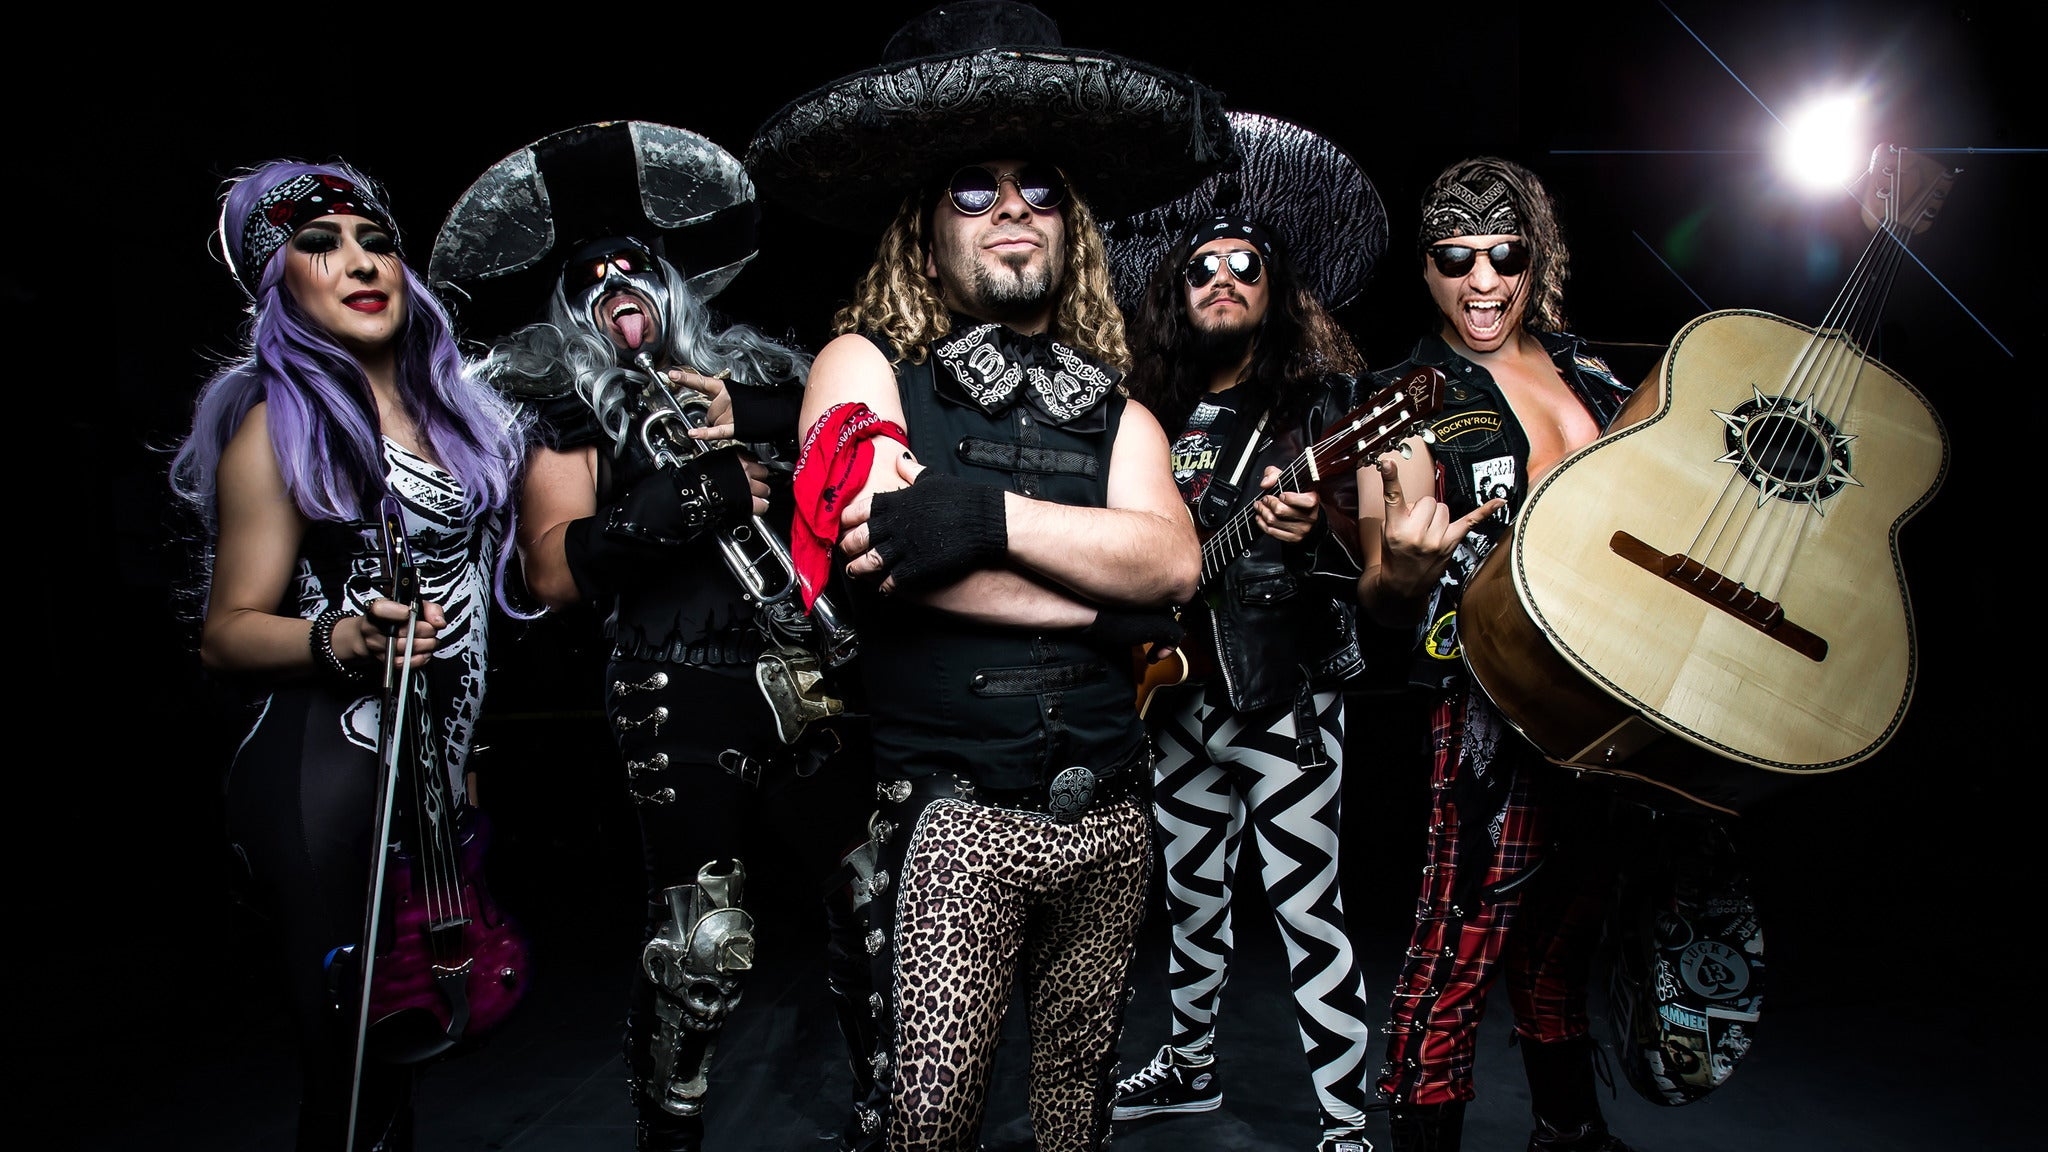 Metalachi at San Manuel Casino